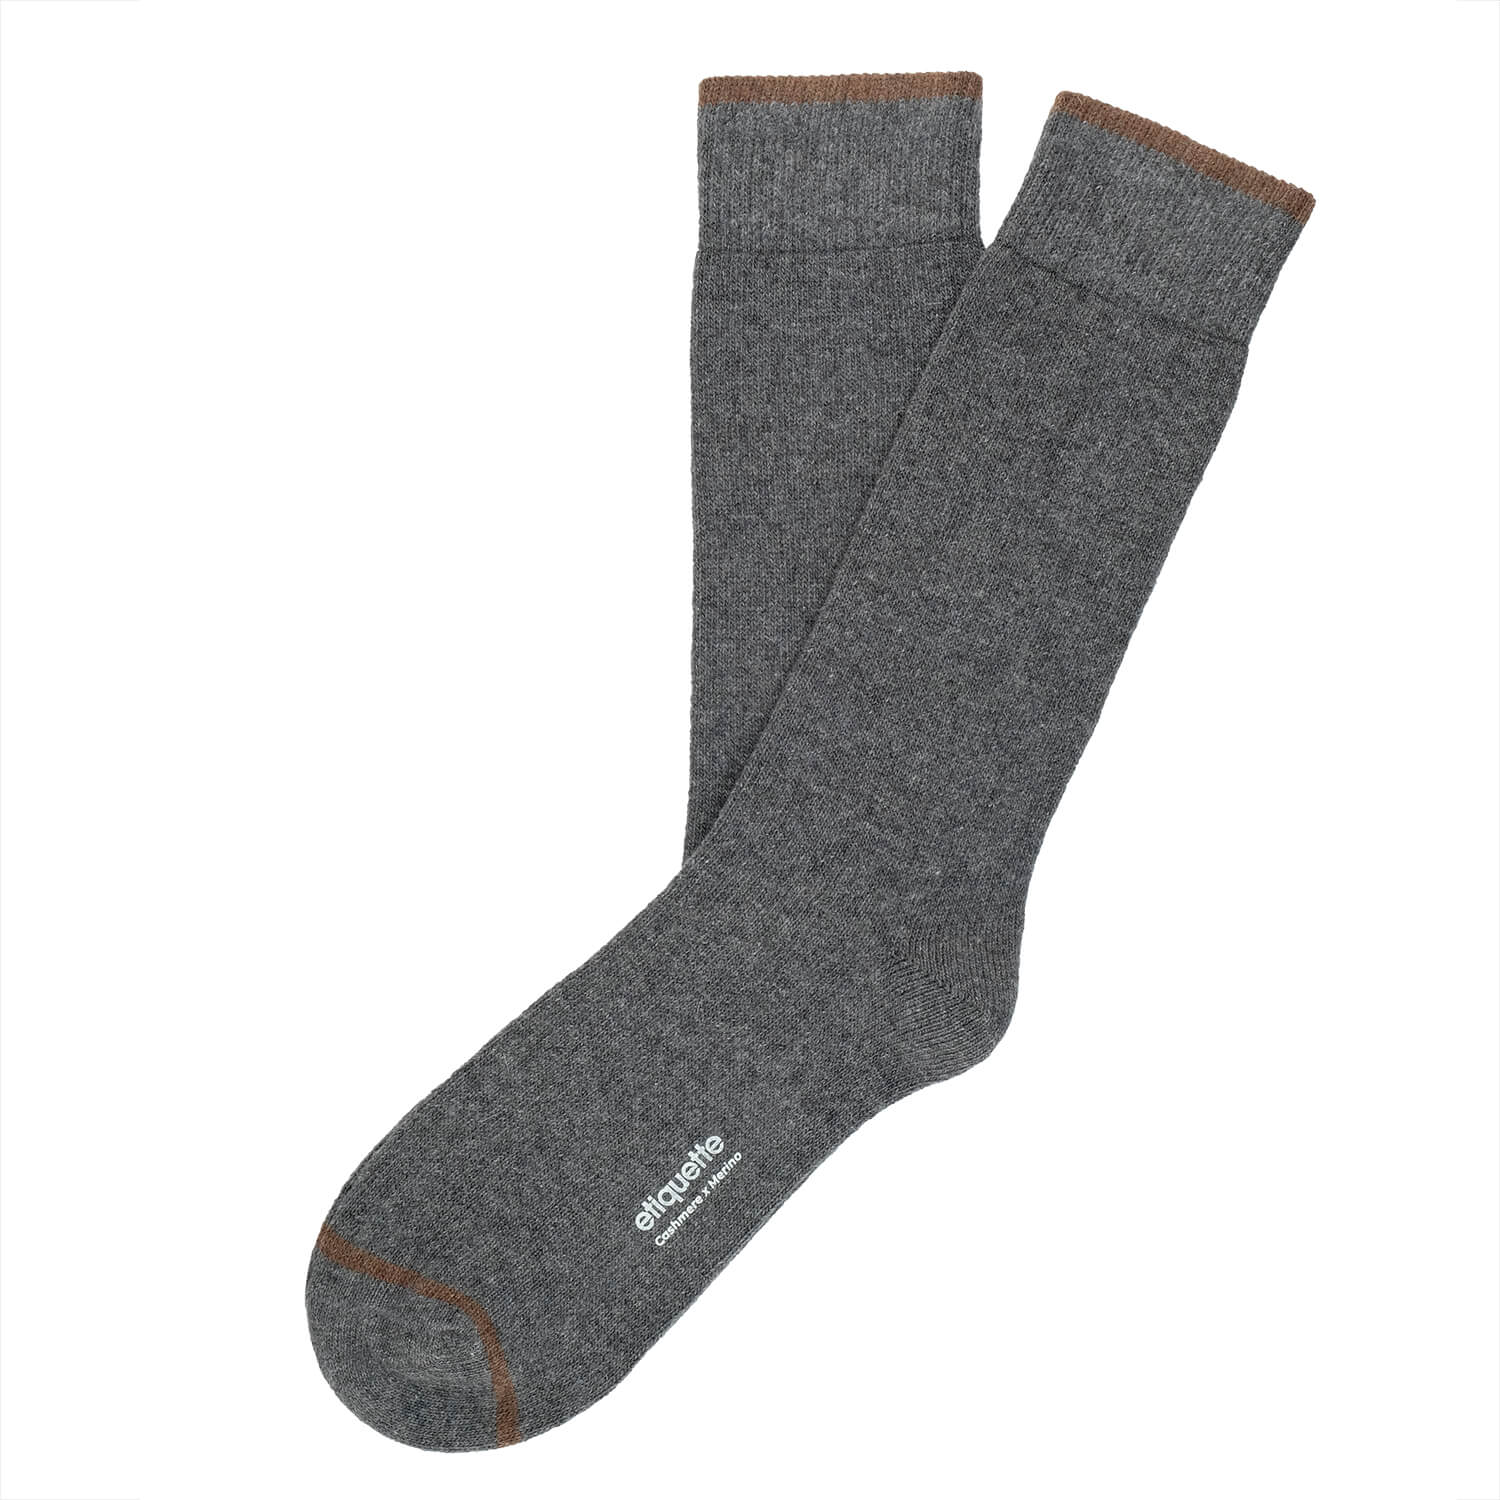 Mens Socks - Cashmere x Merino Men's Socks - Dark Grey⎪Etiquette Clothiers